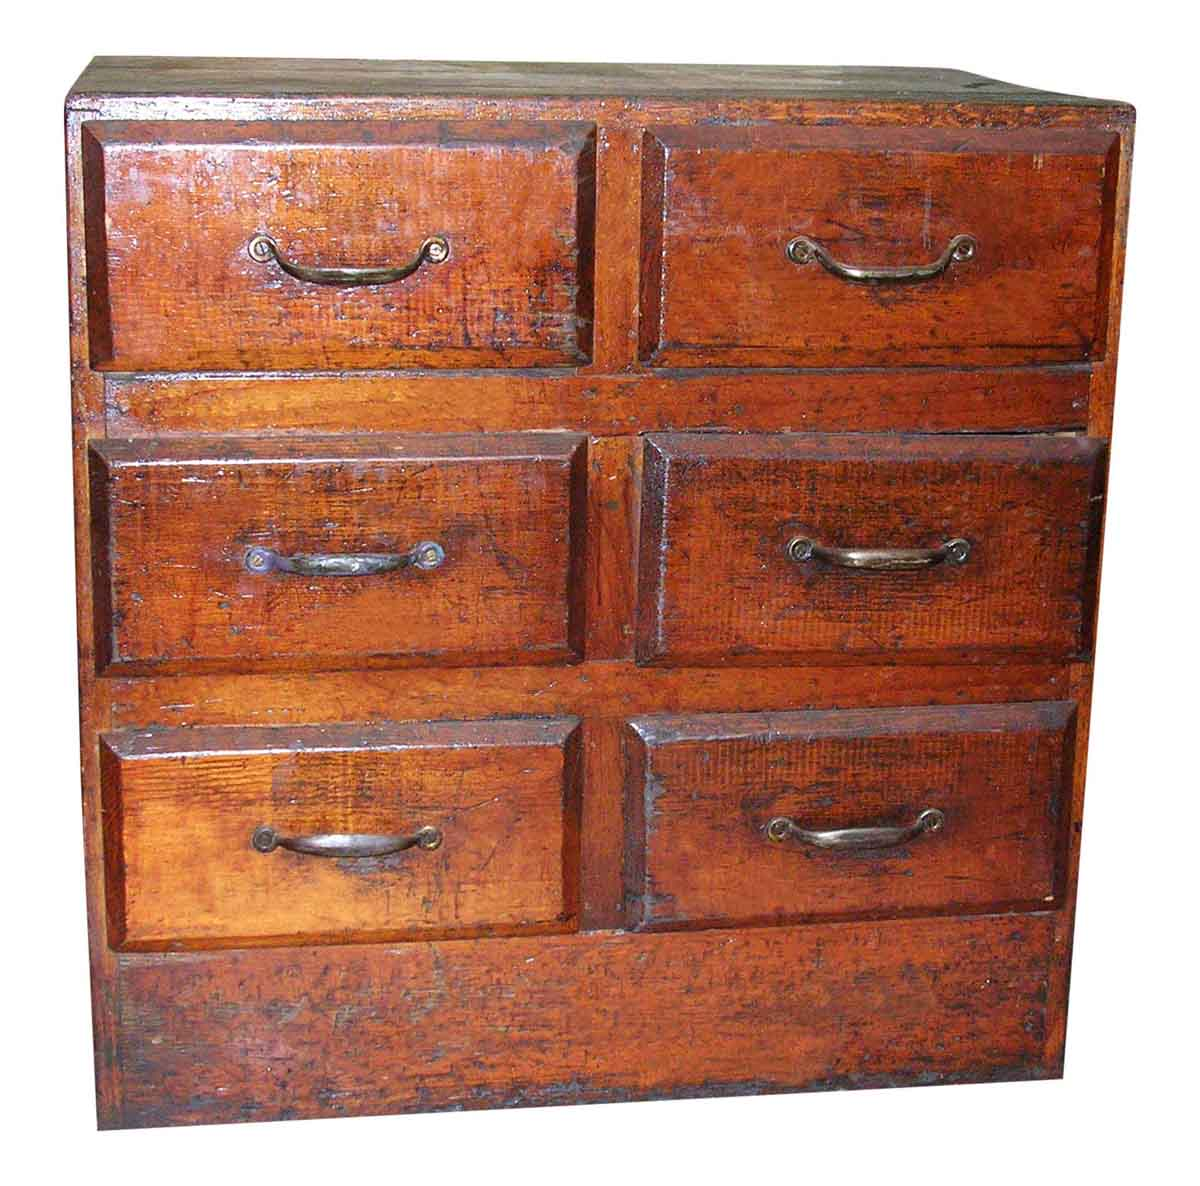 Old Rustic Chest of Drawers